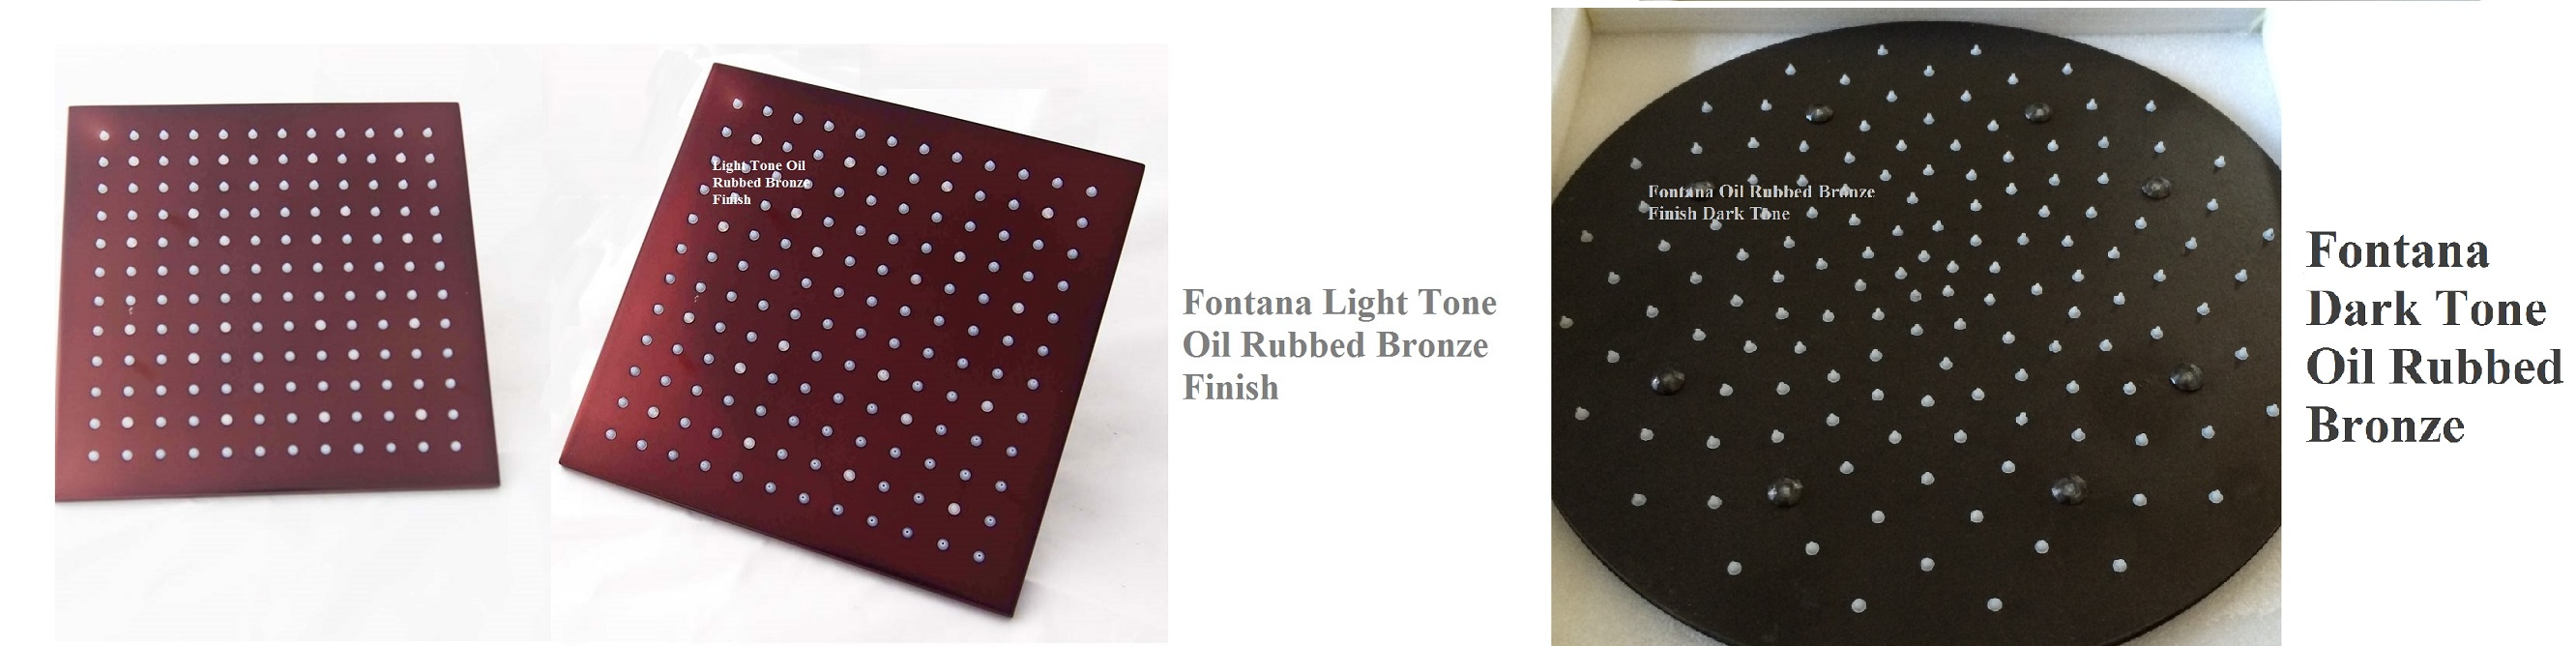 "Fontana Rivera 12"" & 16"" Light/Dark Oil Rubbed Bronze LED Rain Shower Head - Shower Head Size 12"", 16"""